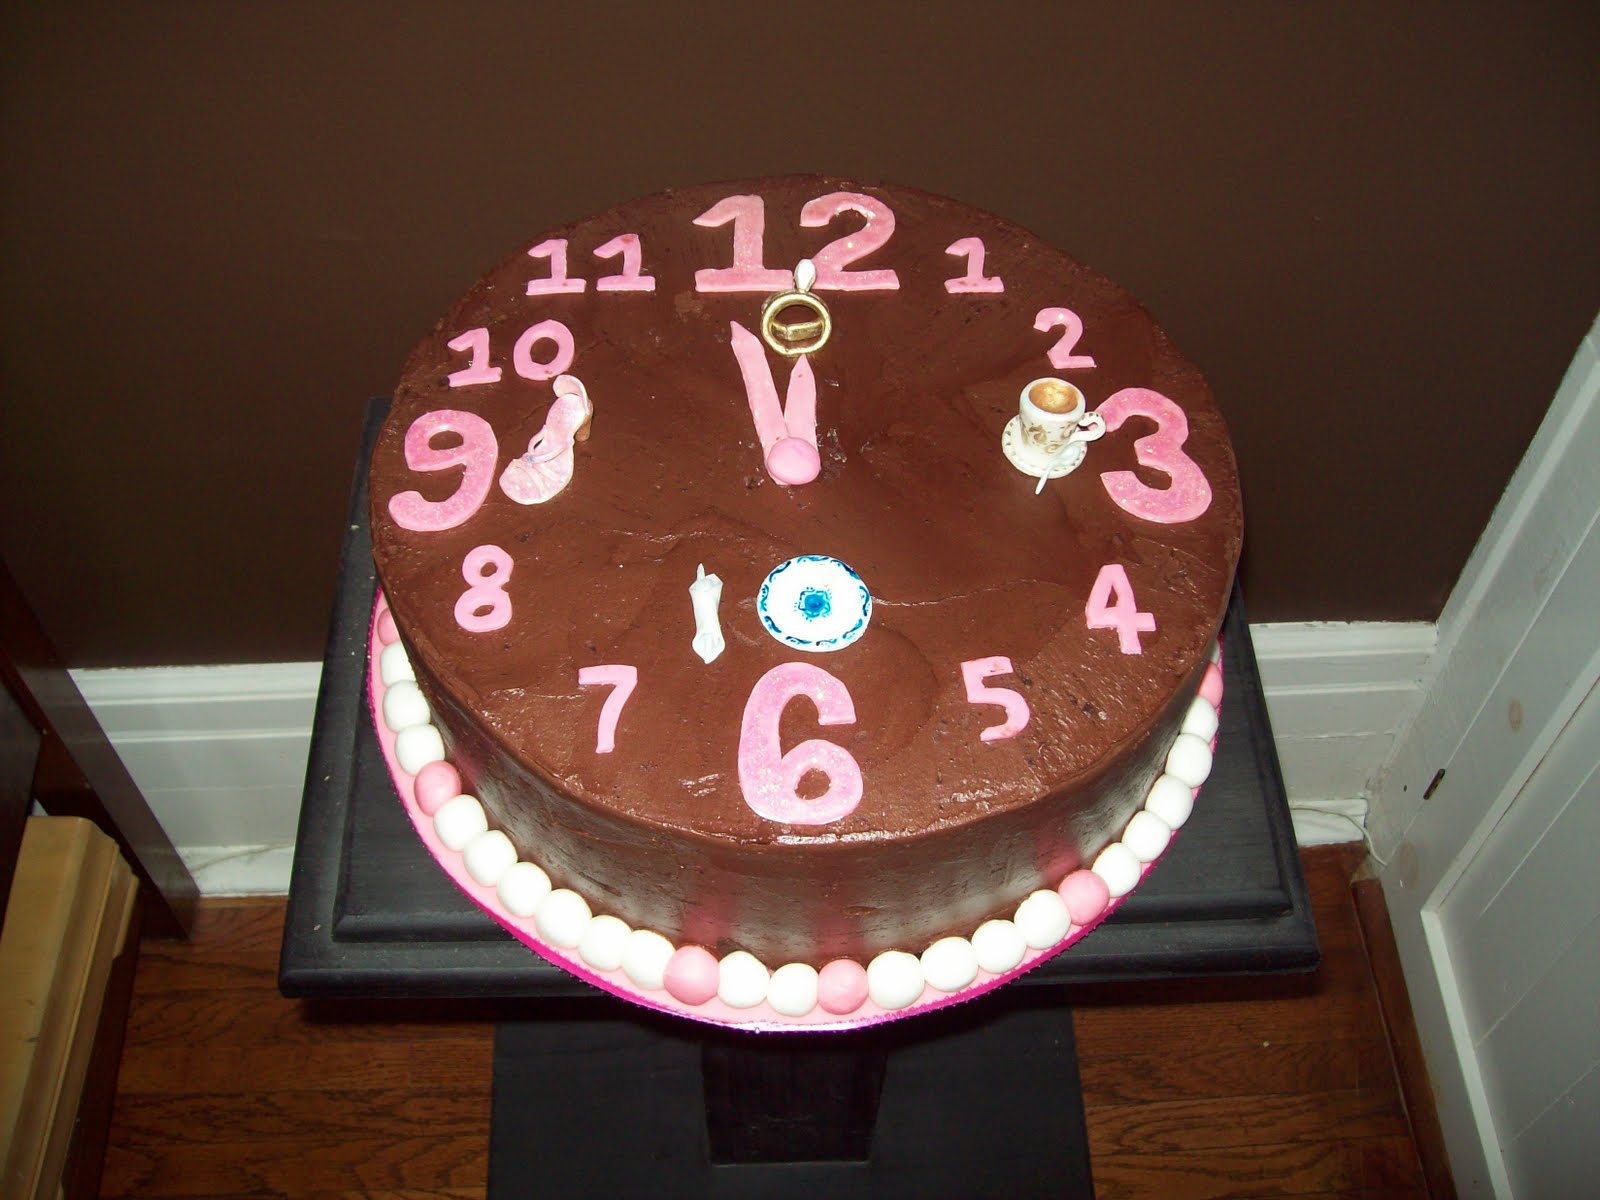 Remarkable Around the Clock Bridal Shower Cake 1600 x 1200 · 158 kB · jpeg